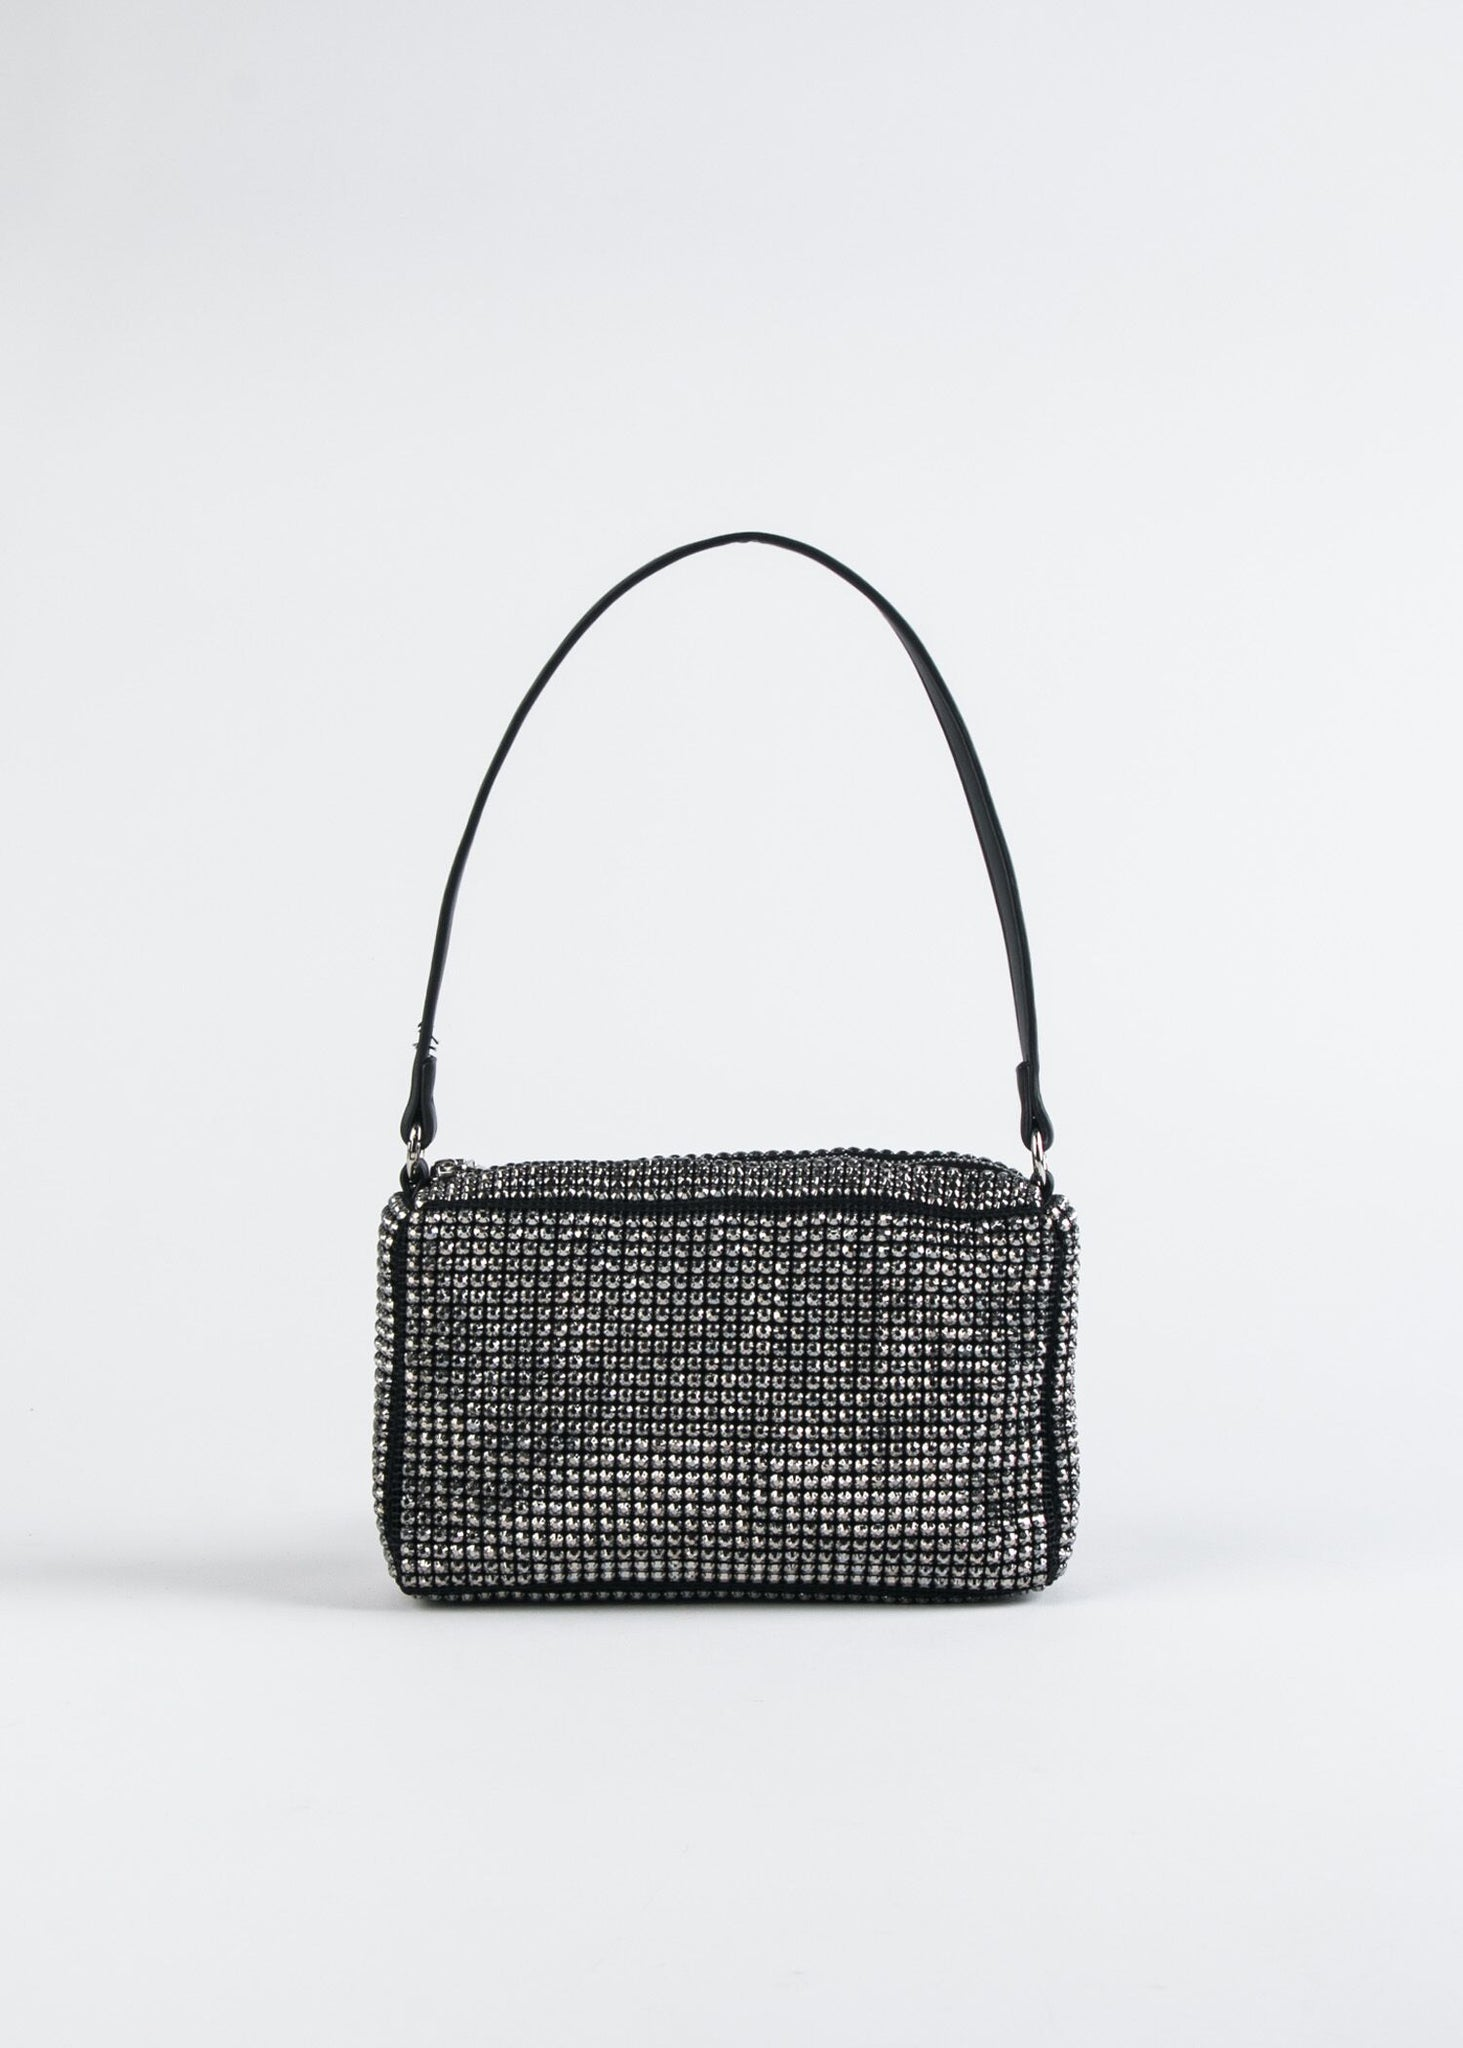 EAST WEST RHINESTONE BAG